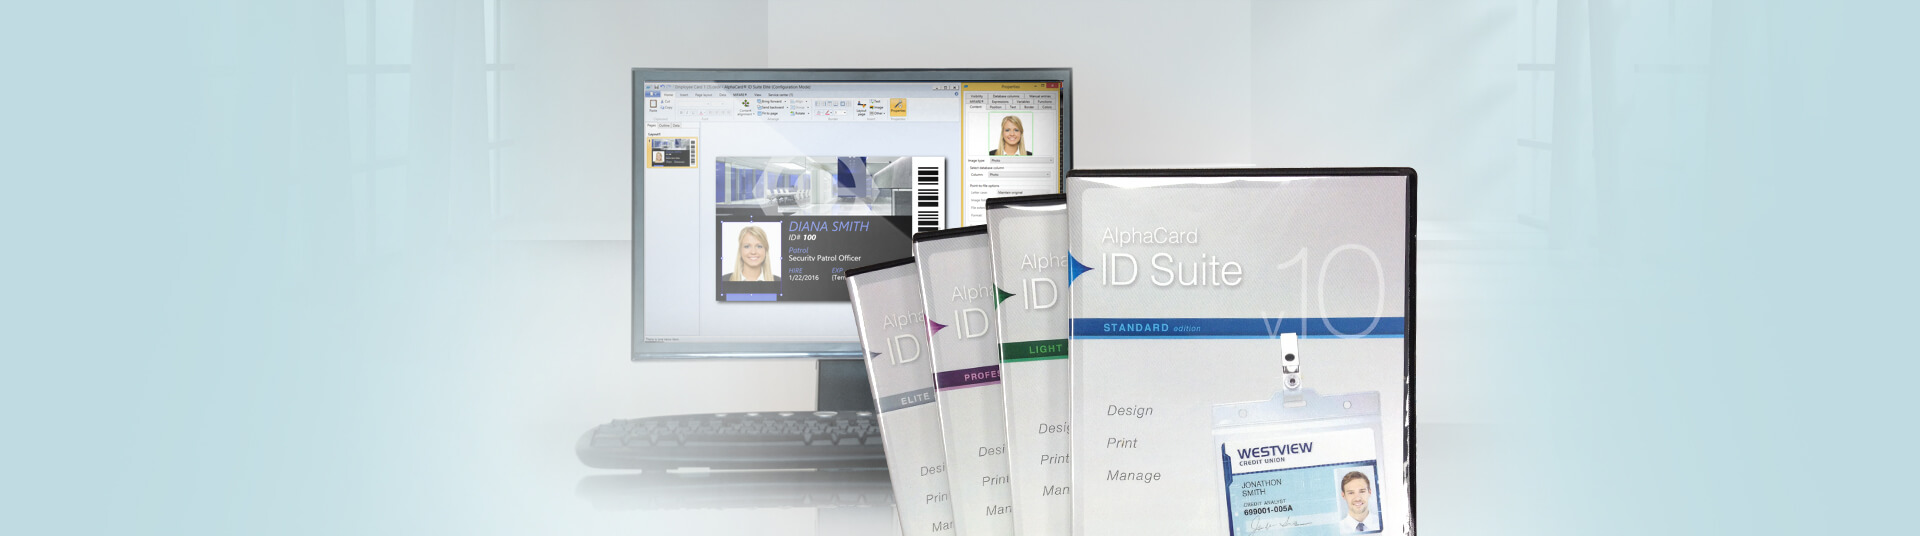 Common Features of Identification Software